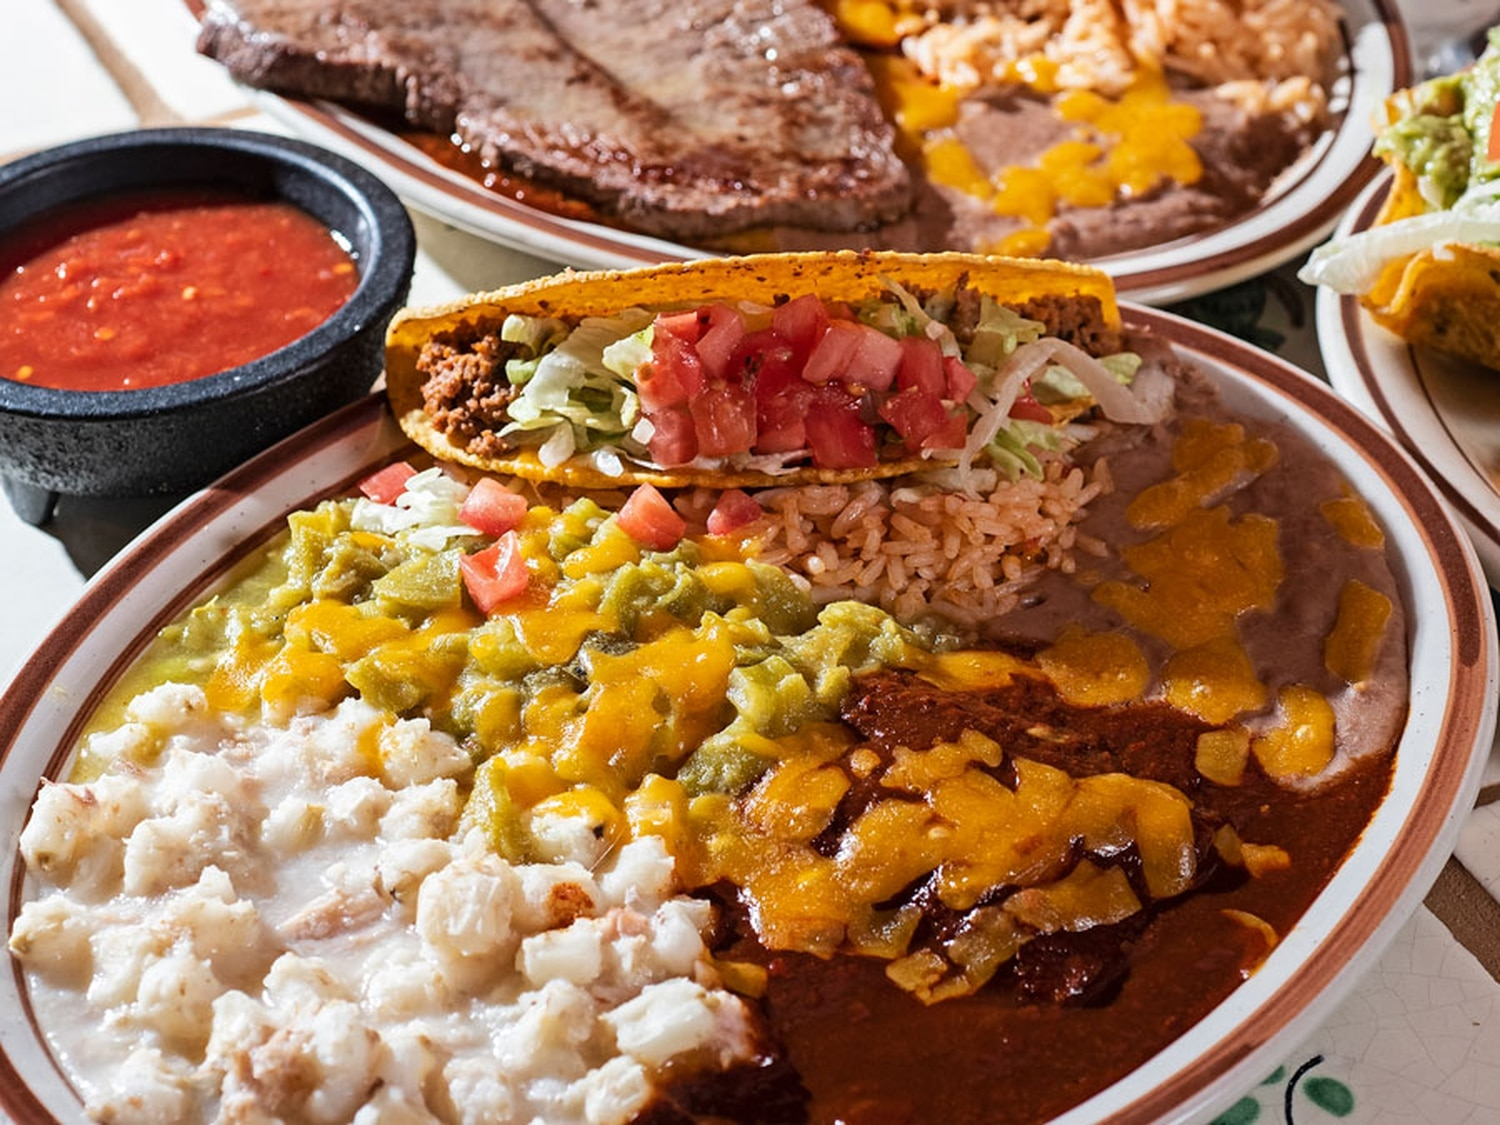 Combo plate with beef taco, cheese enchilada, rice, beans and posole